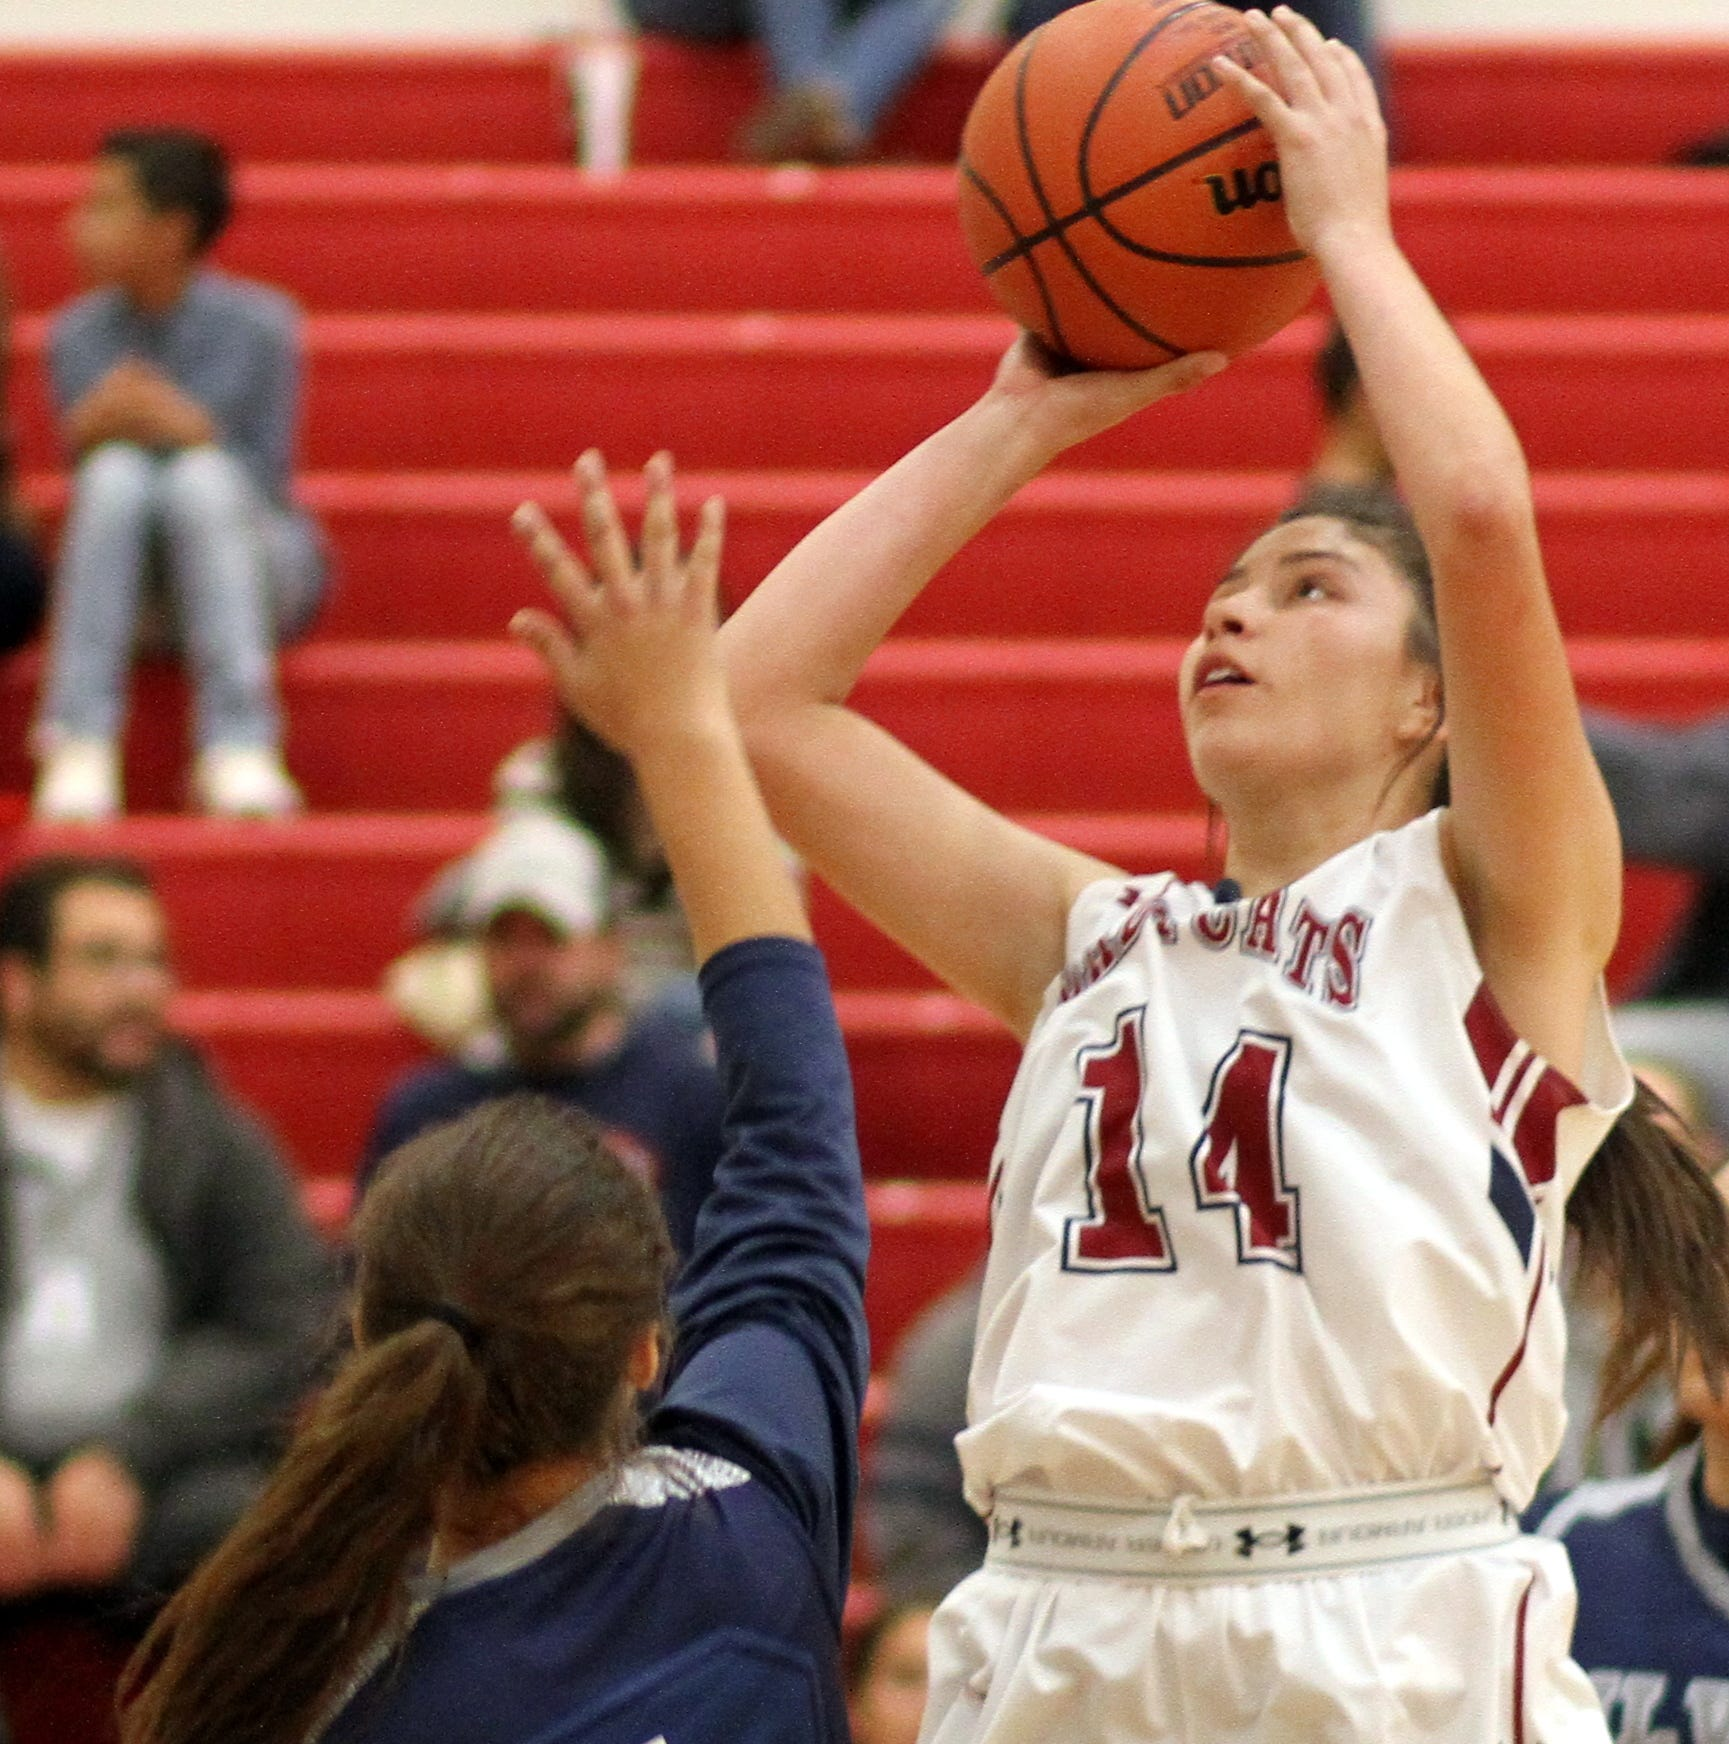 Deming High Lady 'Cats break Silver High Fighting Colts, 64-51 to improve to 5-0